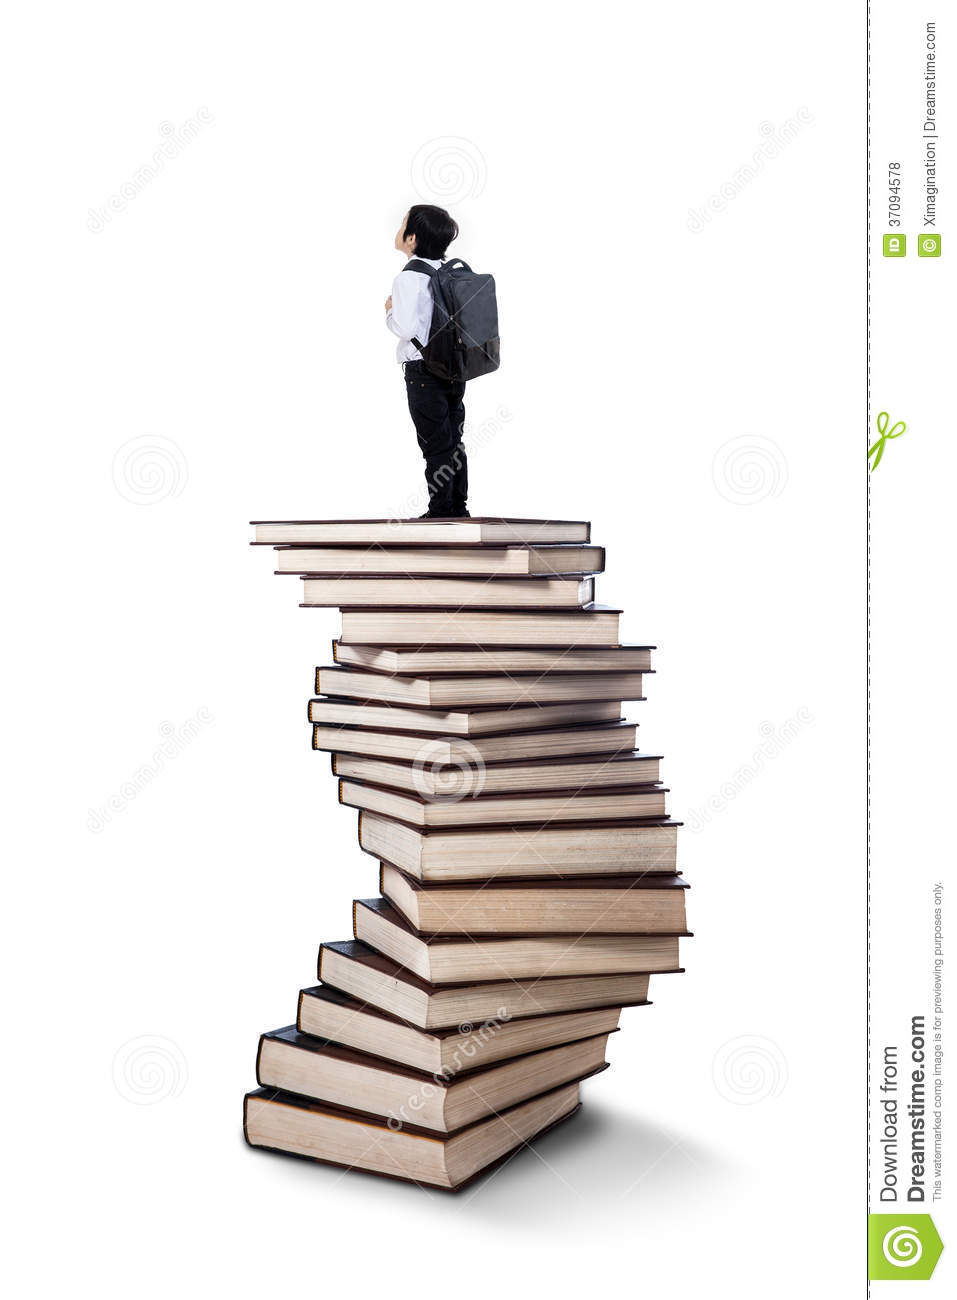 little boy standing on books stack royalty free stock